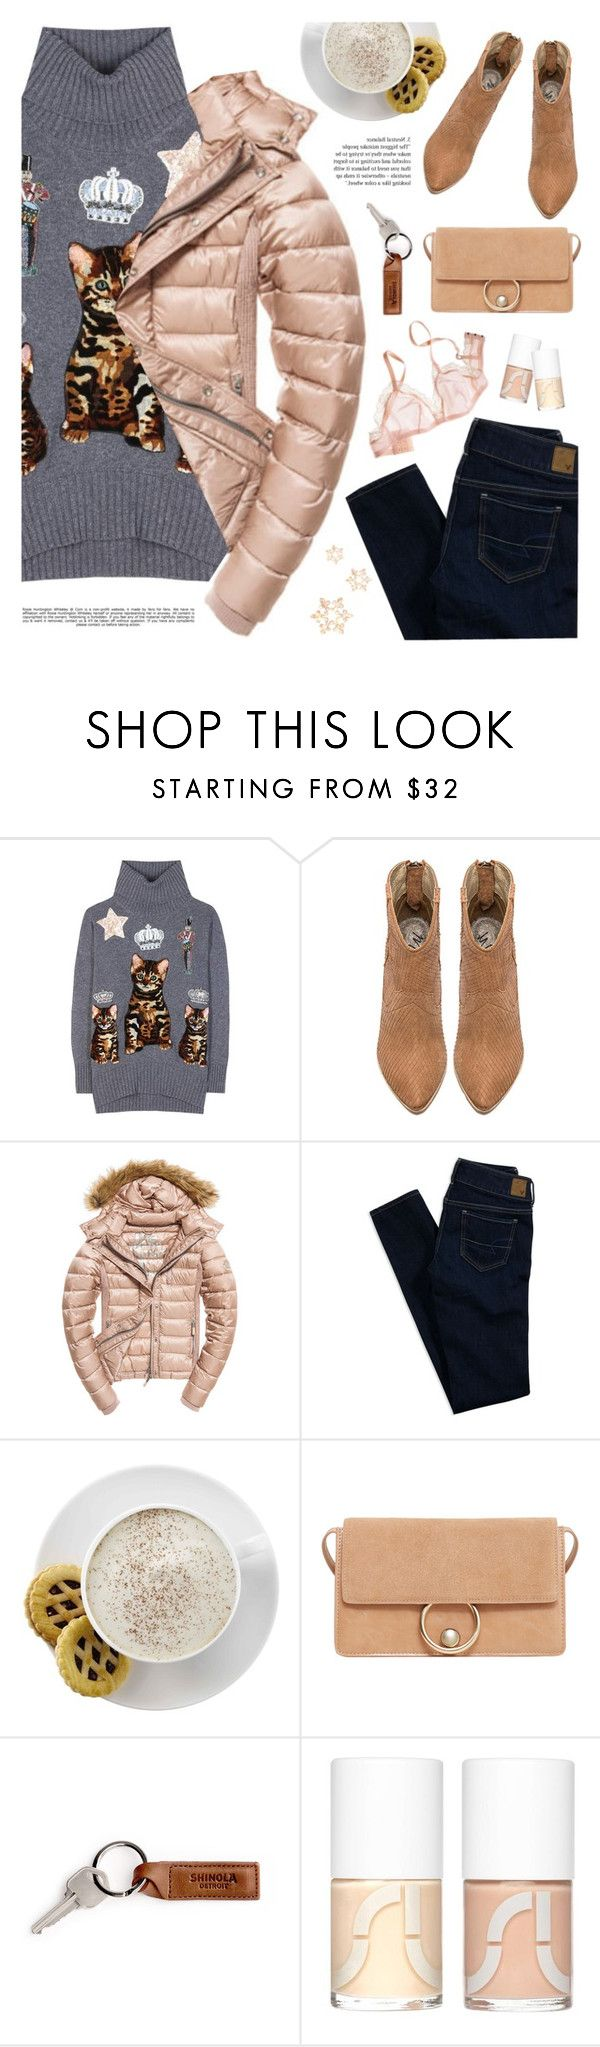 """Hey, Girl: Pretty Pink Coats 🌼"" by fashiondiaryy ❤ liked on Polyvore featuring Dolce&Gabbana, Fuji, American Eagle Outfitters, Mr. Coffee, MANGO, Uslu Airlines and Whiteley"